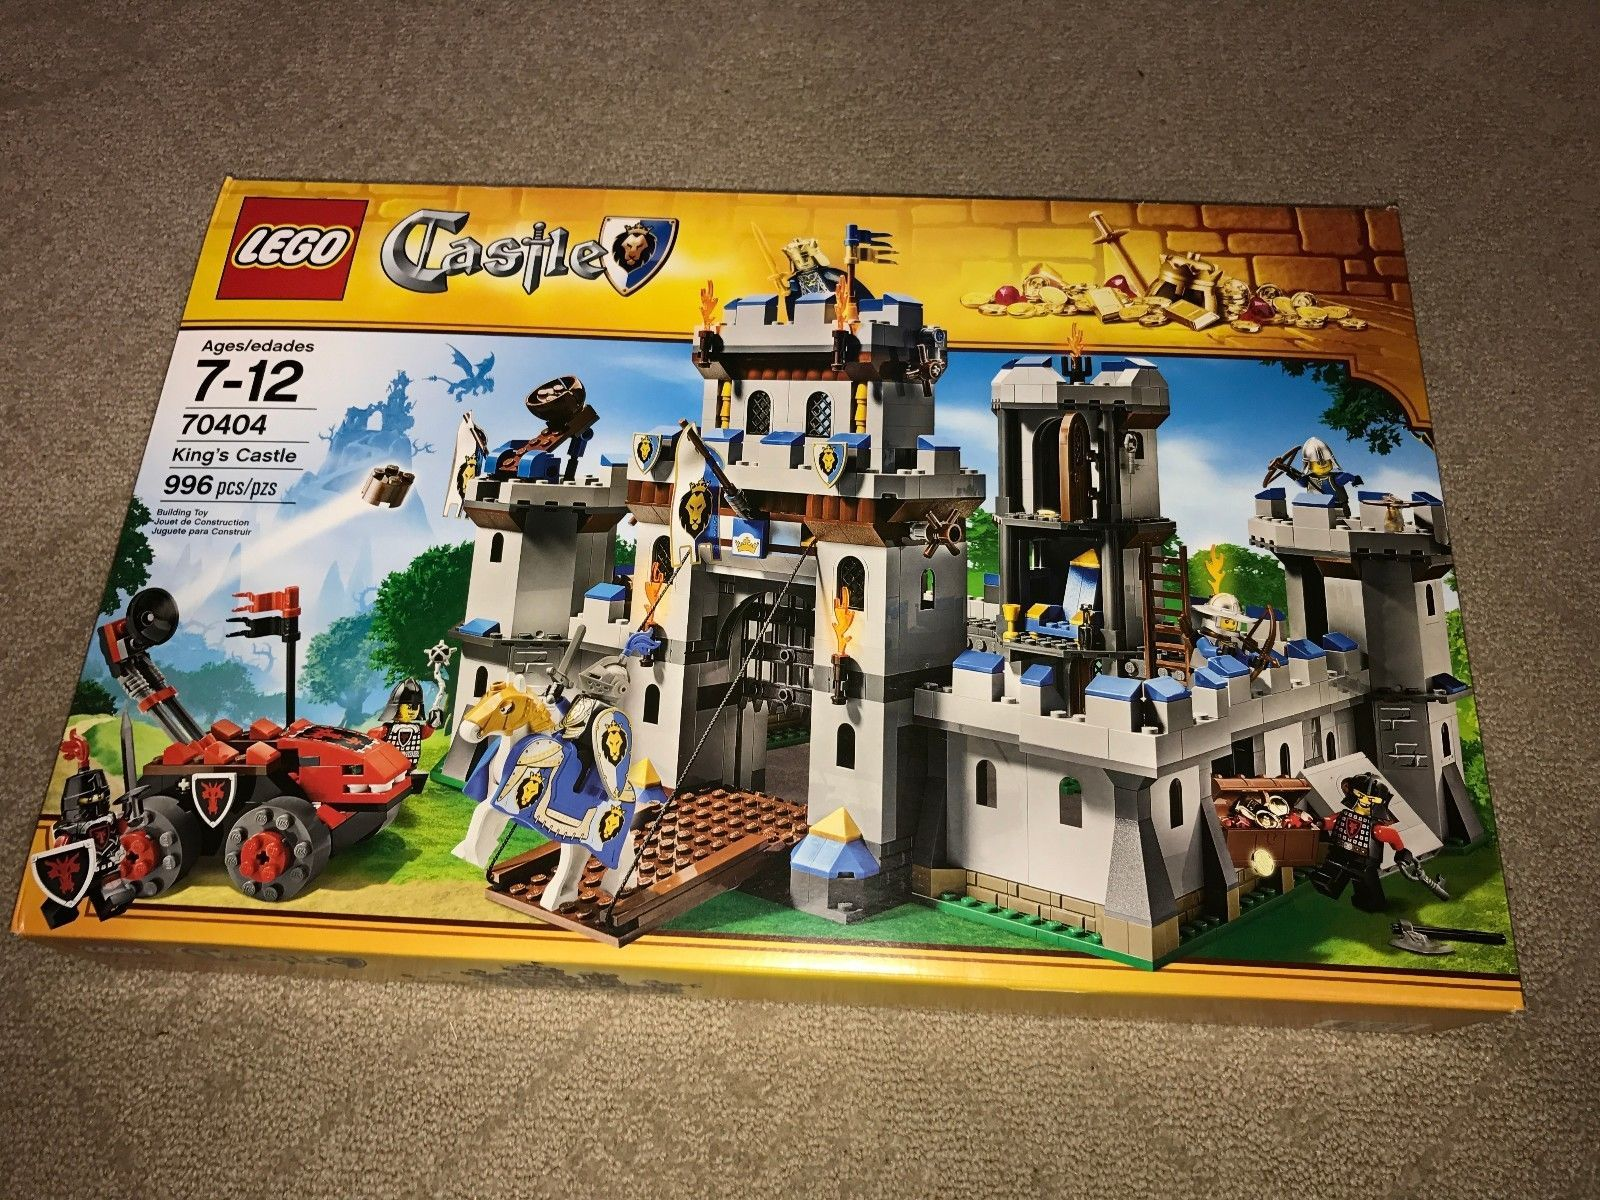 Emmitt Lego Knights 70404 King's Castle - NEW in Box - Retired Set